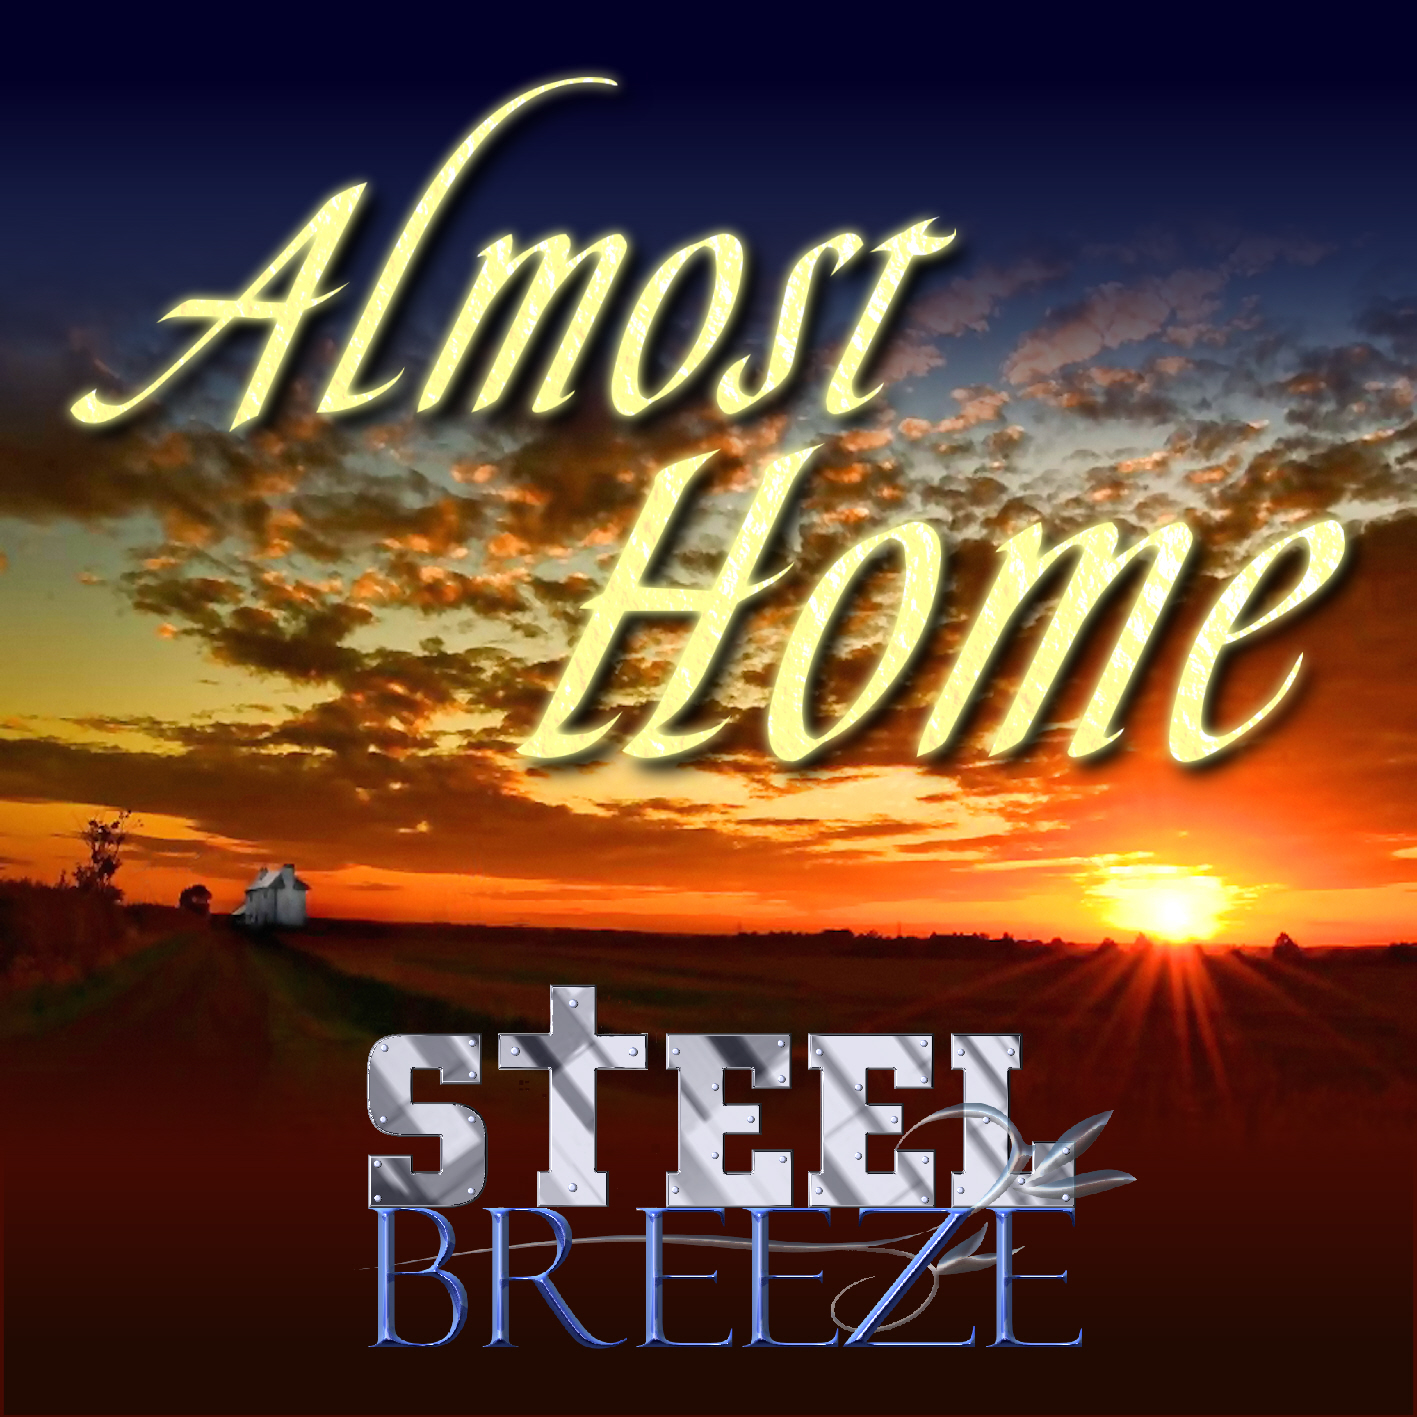 Steel Breeze - Almost Home